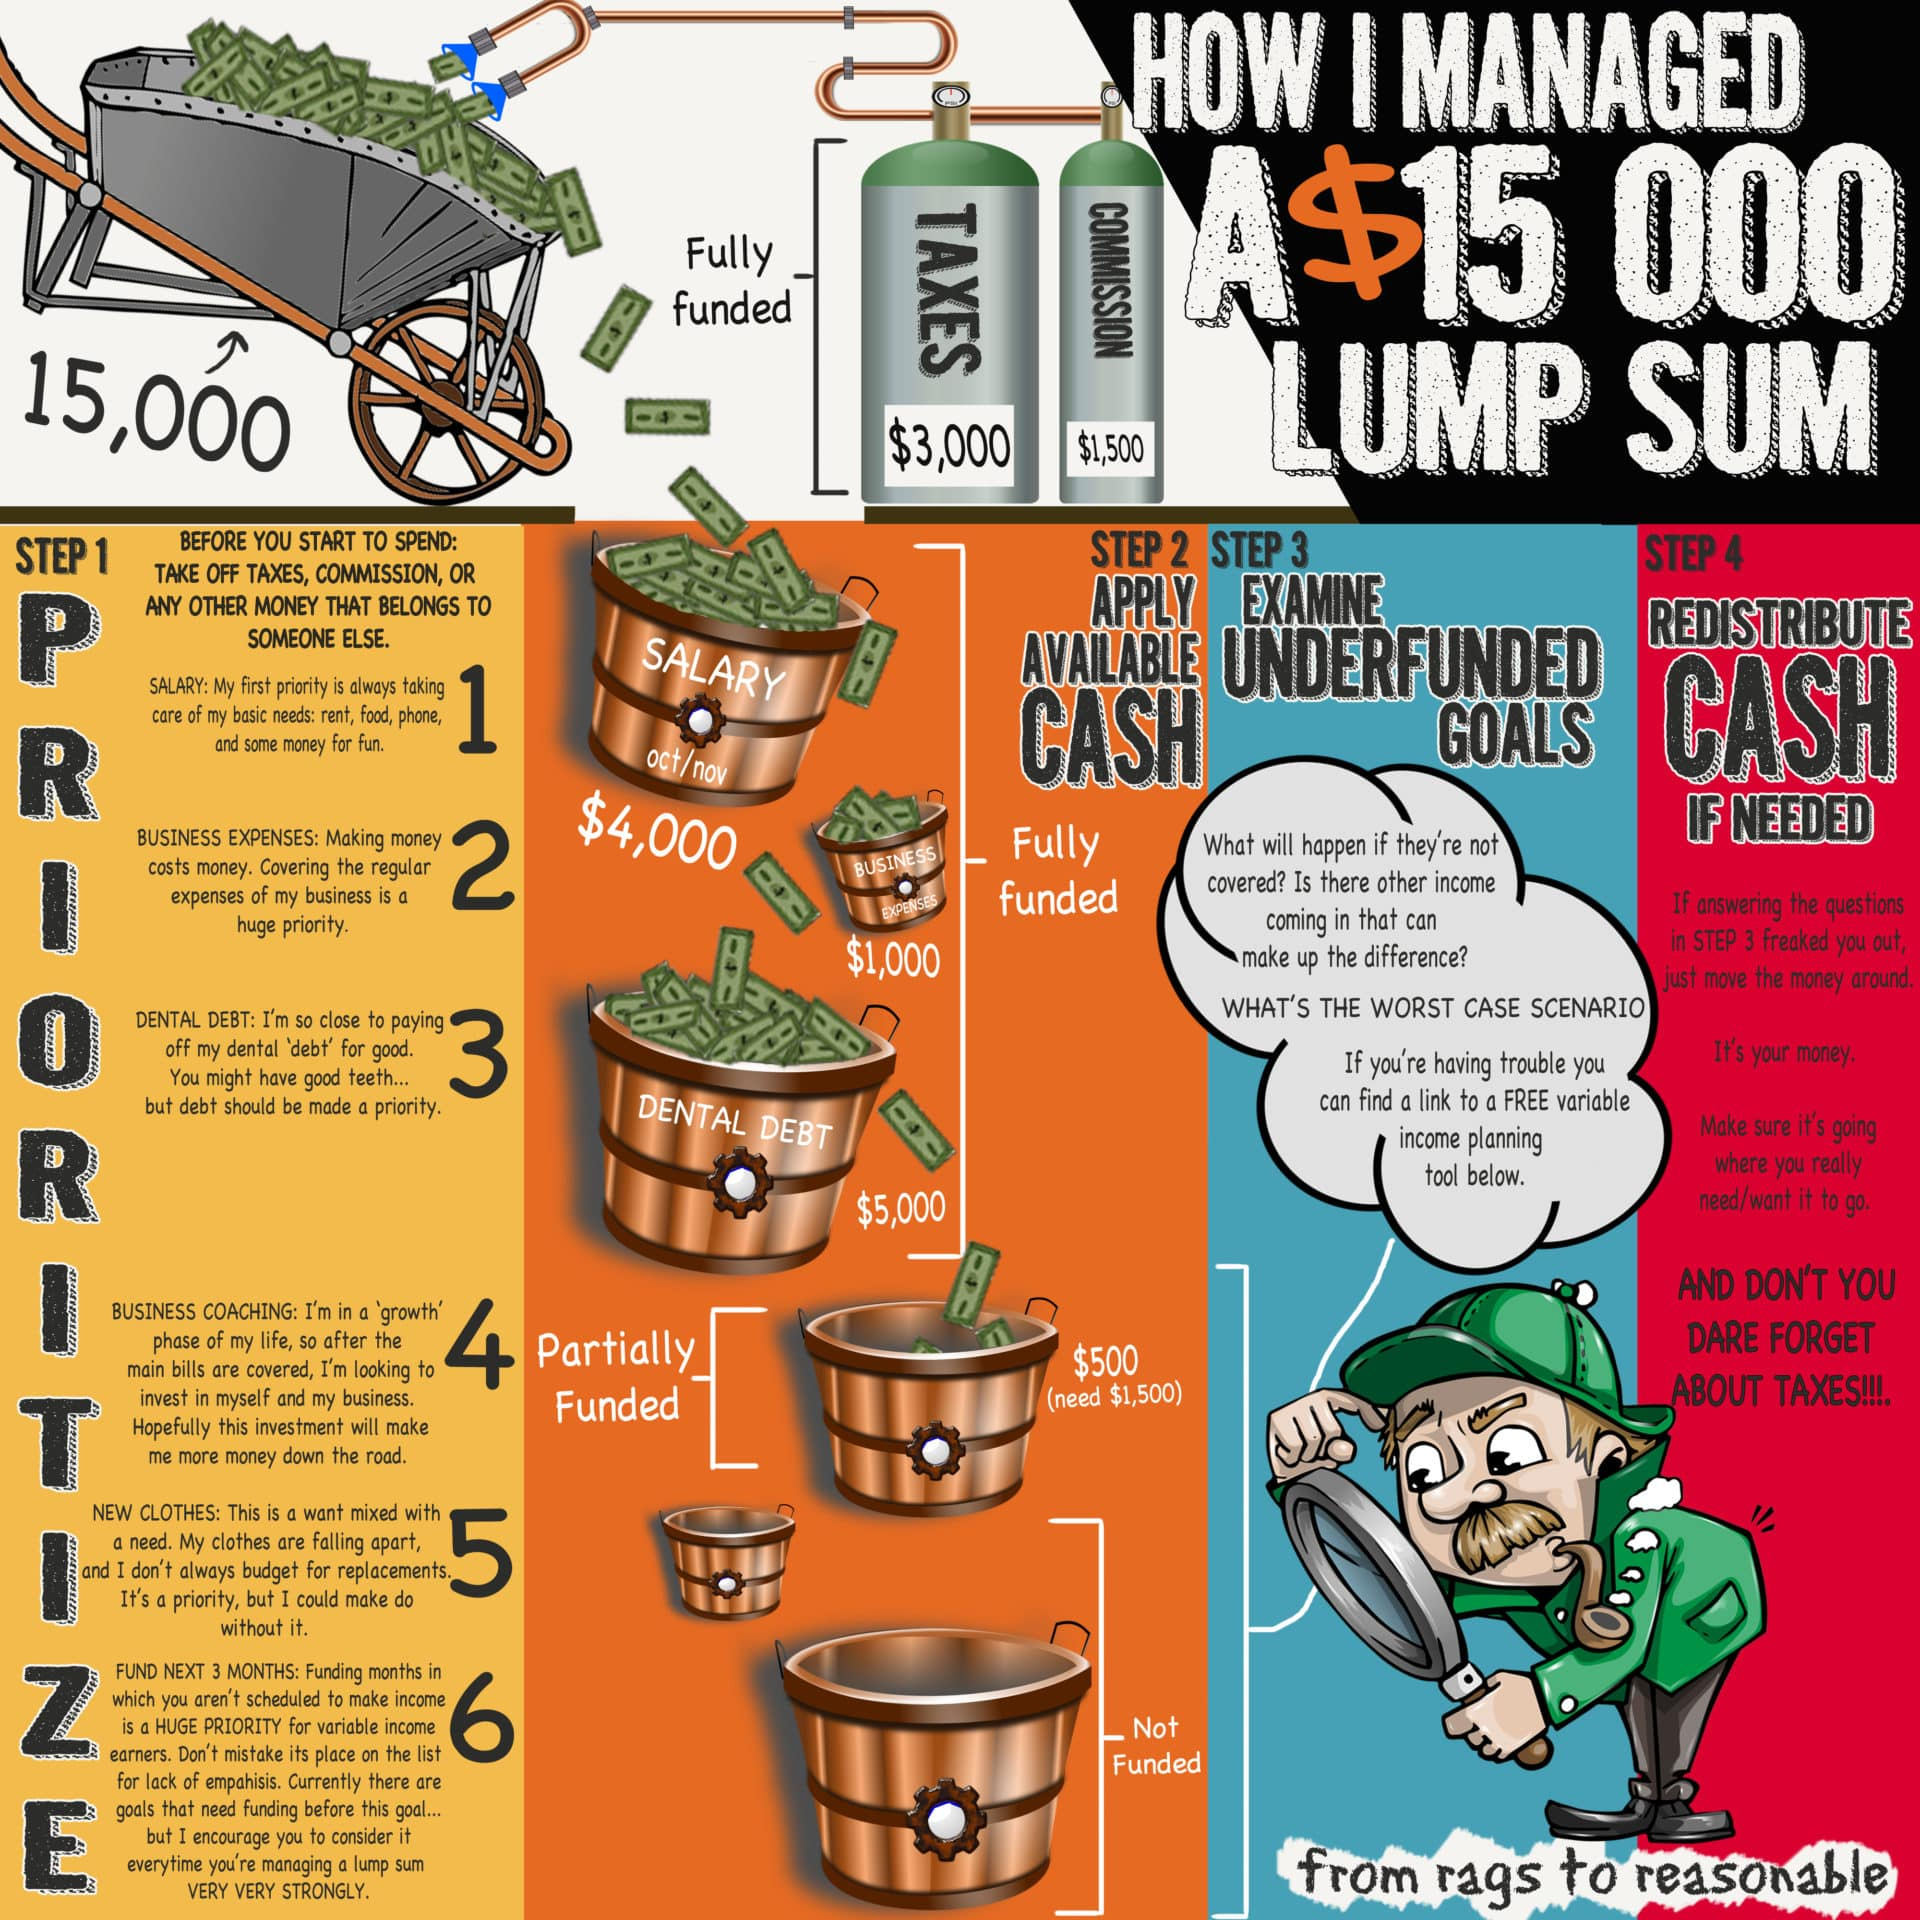 How to manage a lump sum